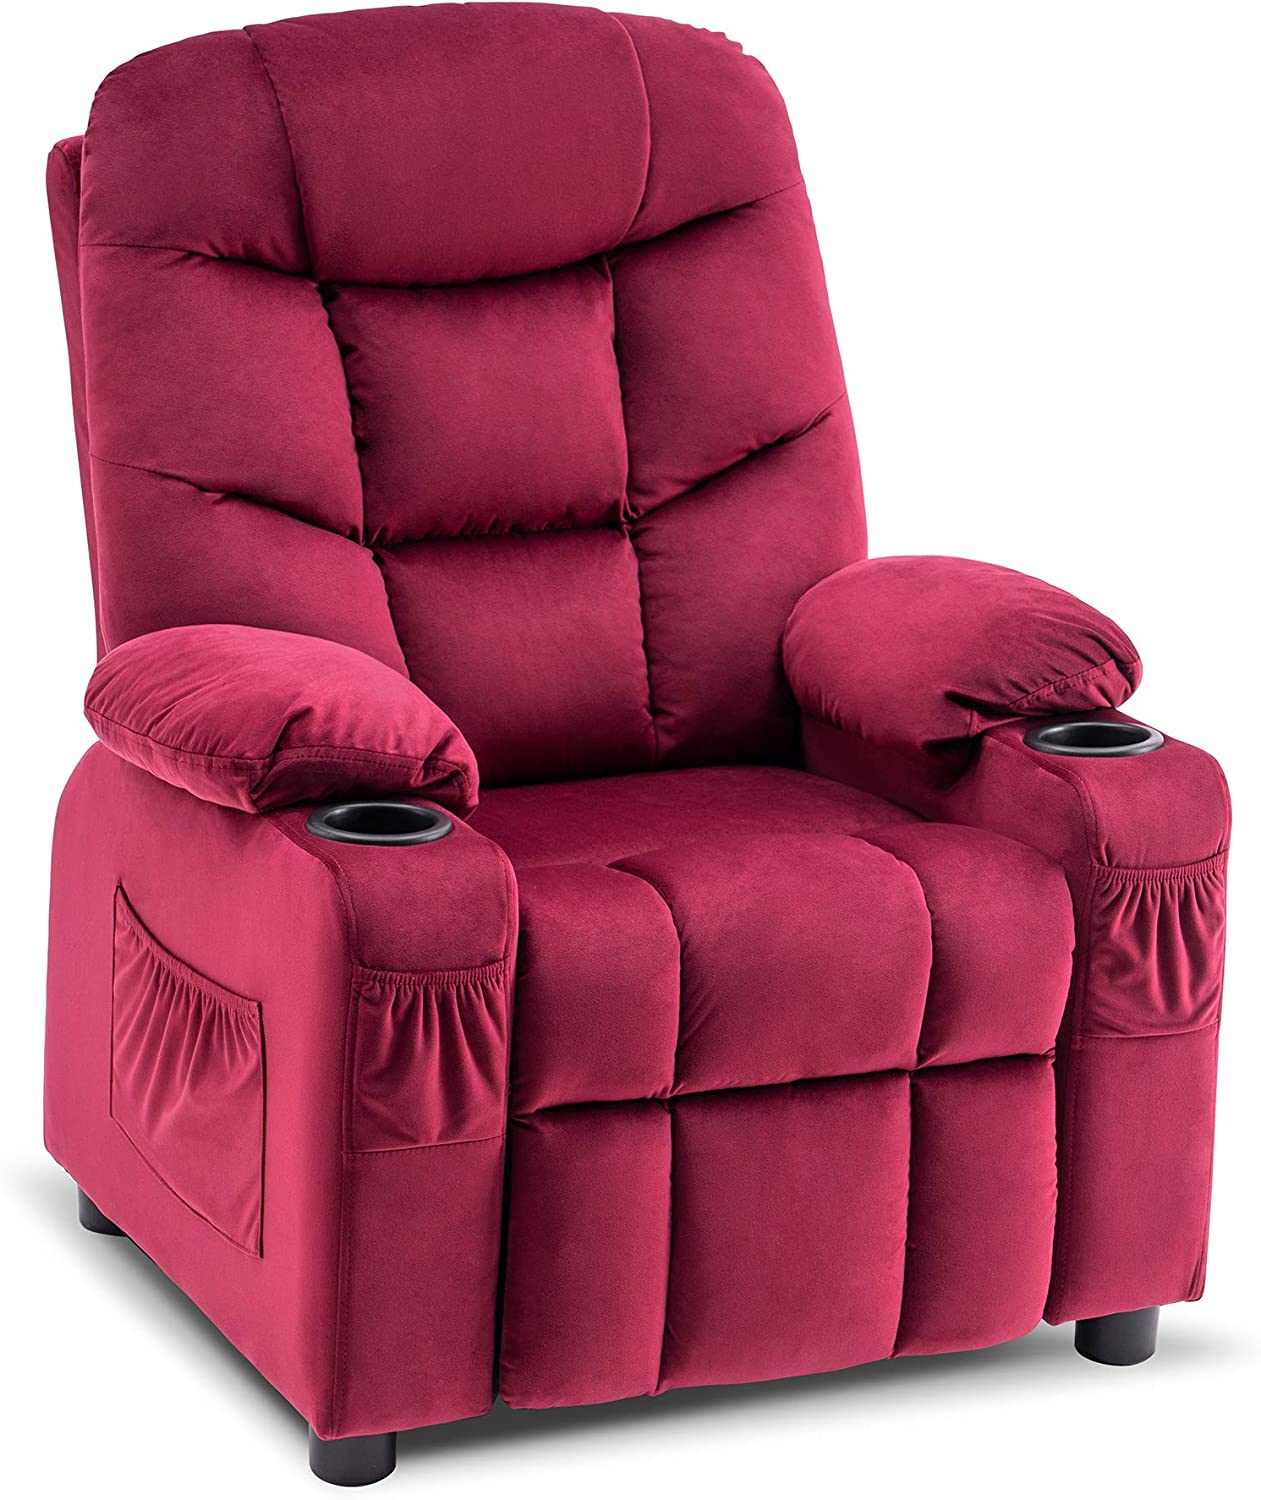 Mcombo Big Kids Recliner Chair with Cup Holders for Boys and Girls Room, 2 Side Pockets, 3+ Age Group, Velvet Fabric 7355 (Burgundy)